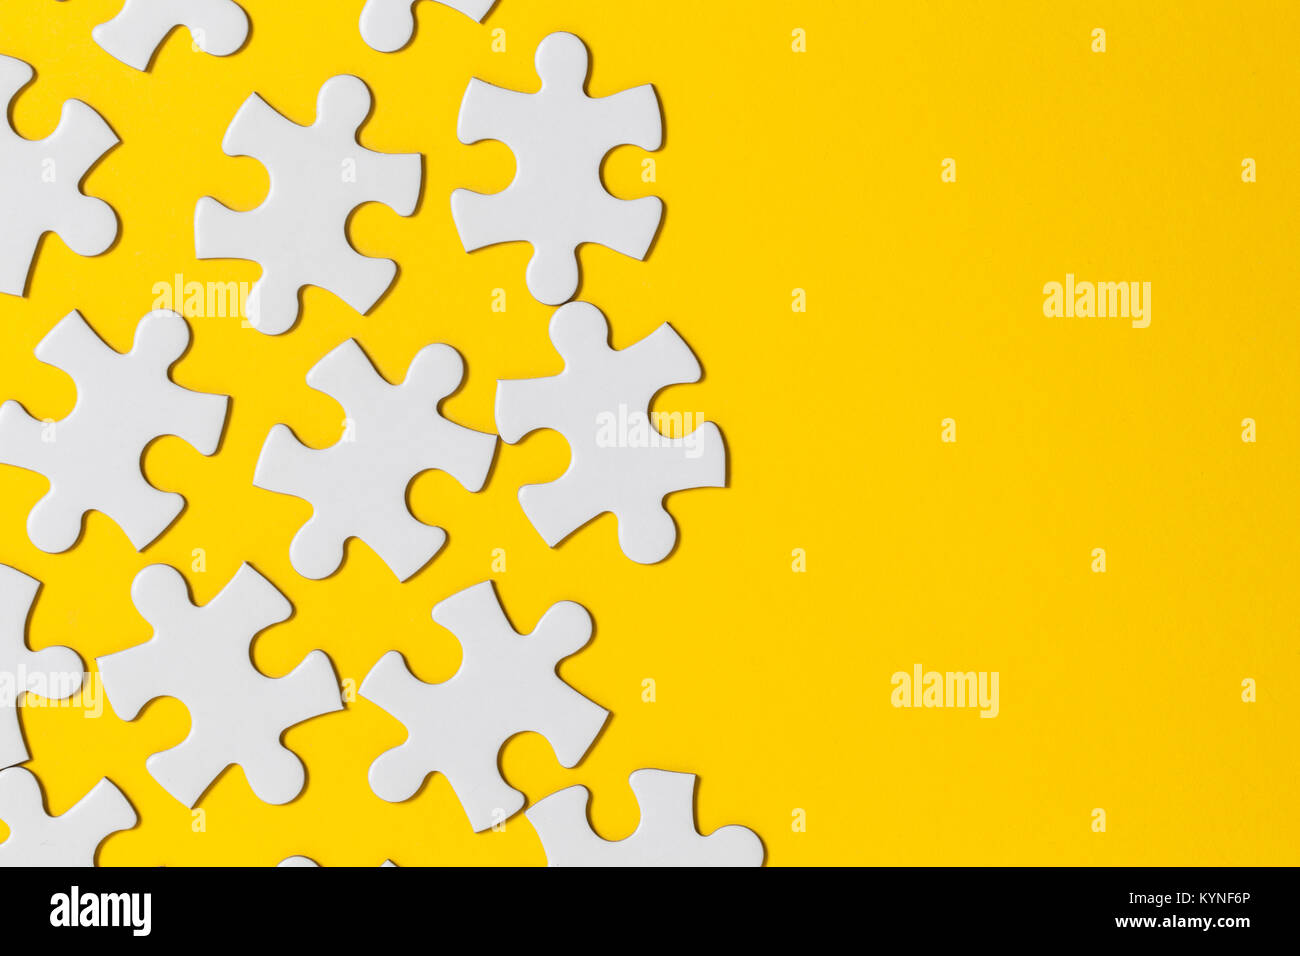 White jigsaw puzzle pieces on a yellow background. Business solution concept - Stock Image